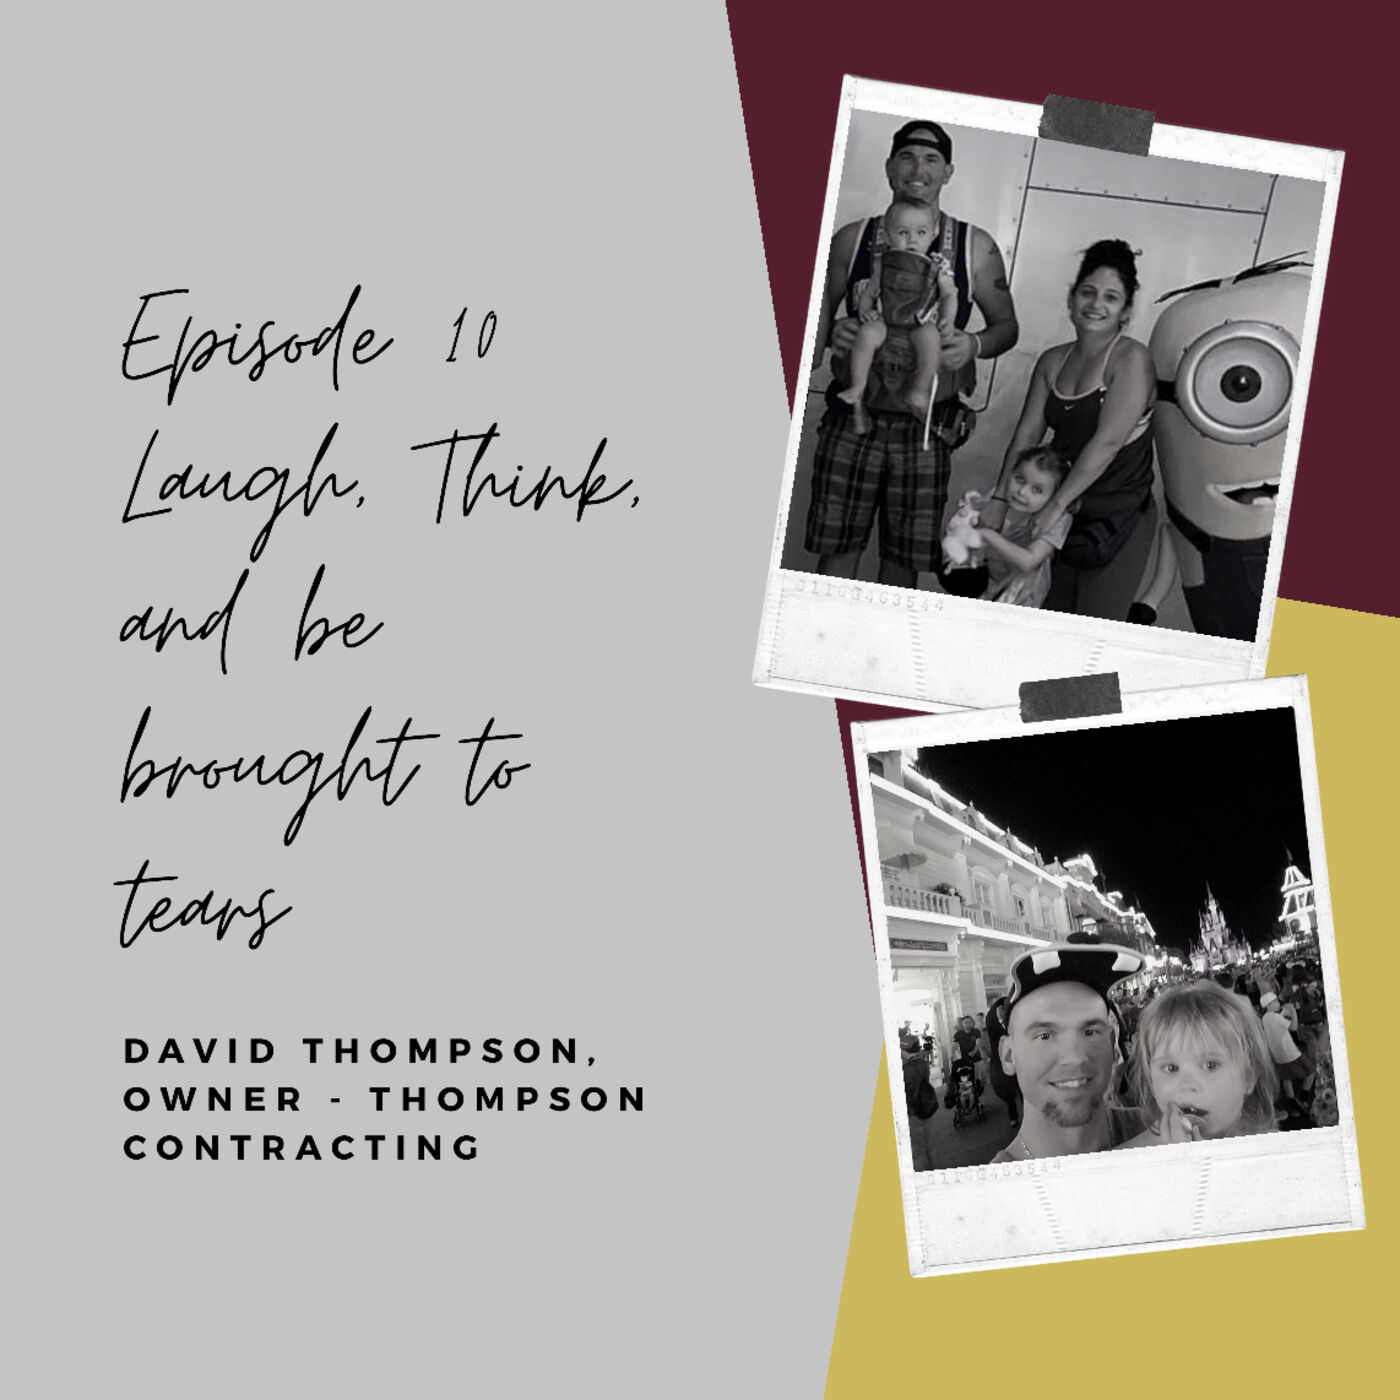 Laugh, think and be brought to tears with Dave Thompson, Owner of Thompson Contracting